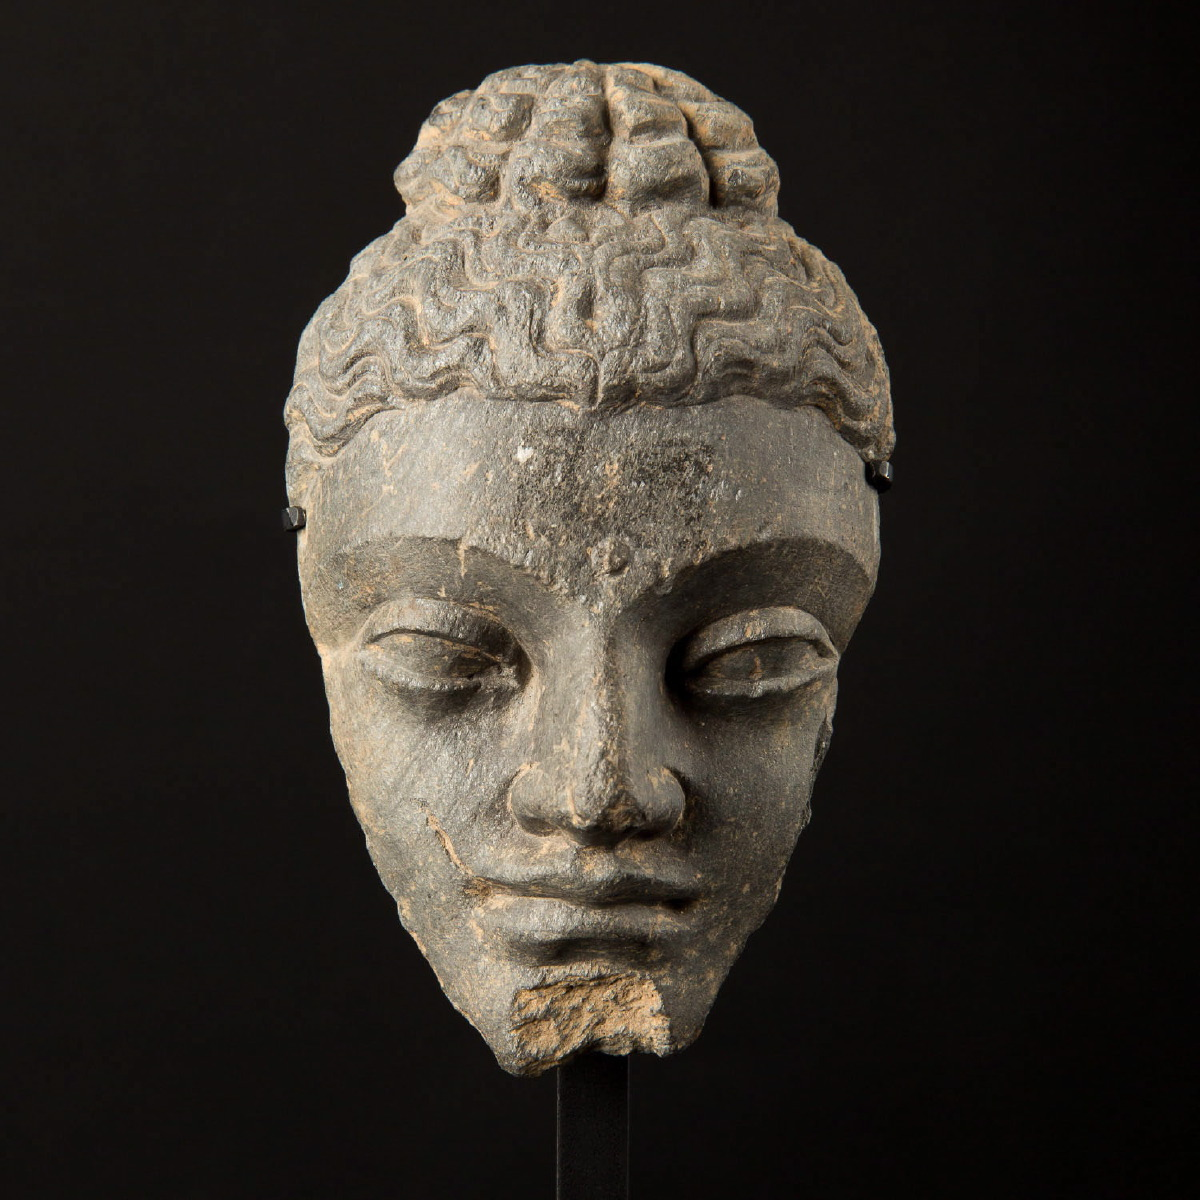 Photo of buddha-face-gandhara-greco-bouddhism-schiste-galerie-golconda